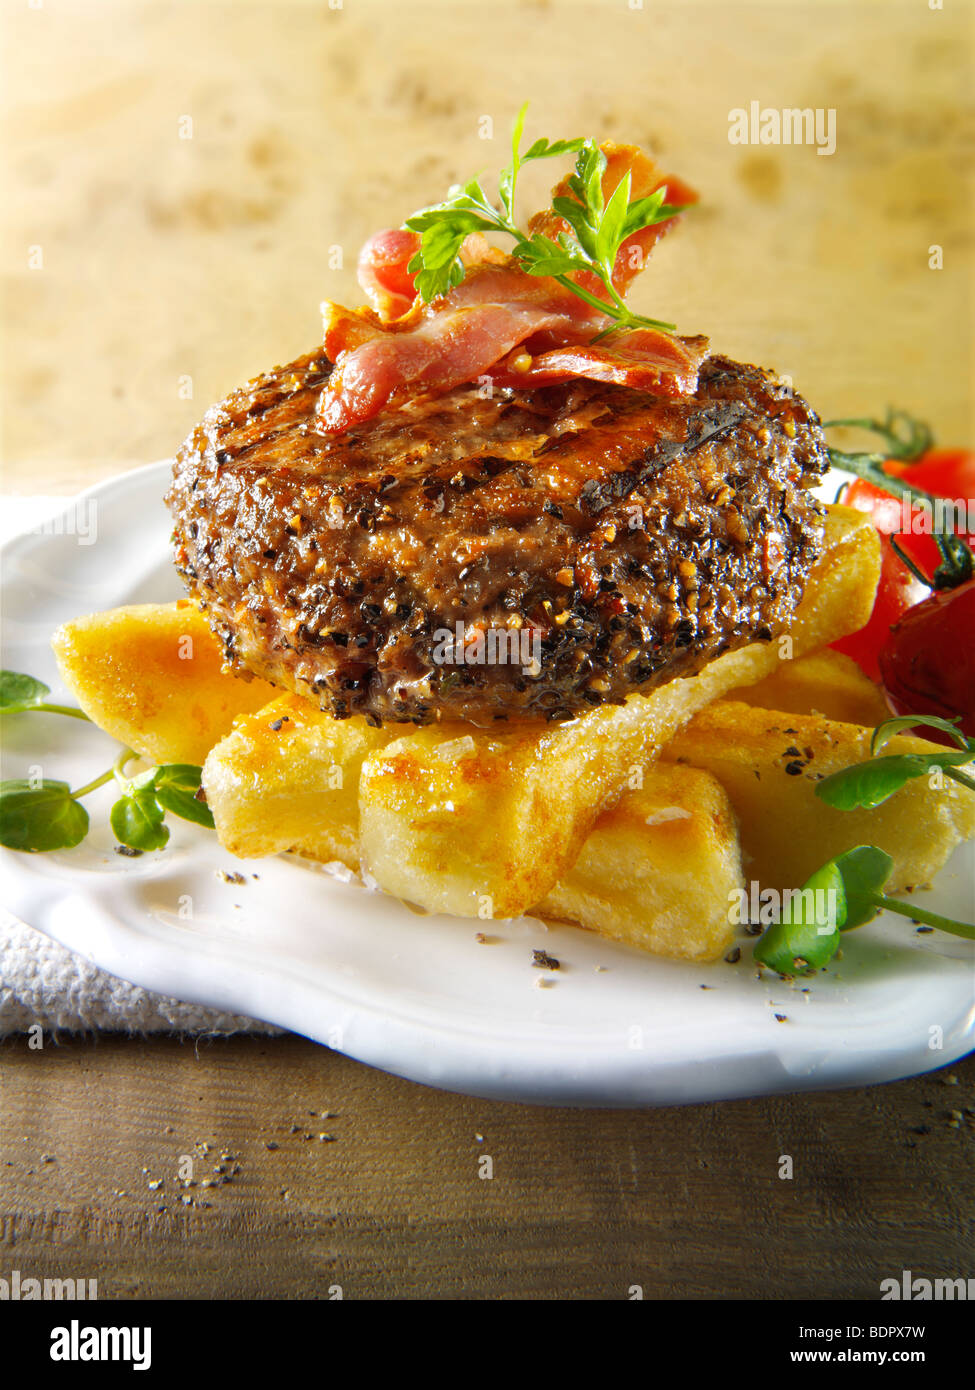 Peppered beef burger with chips - Stock Image